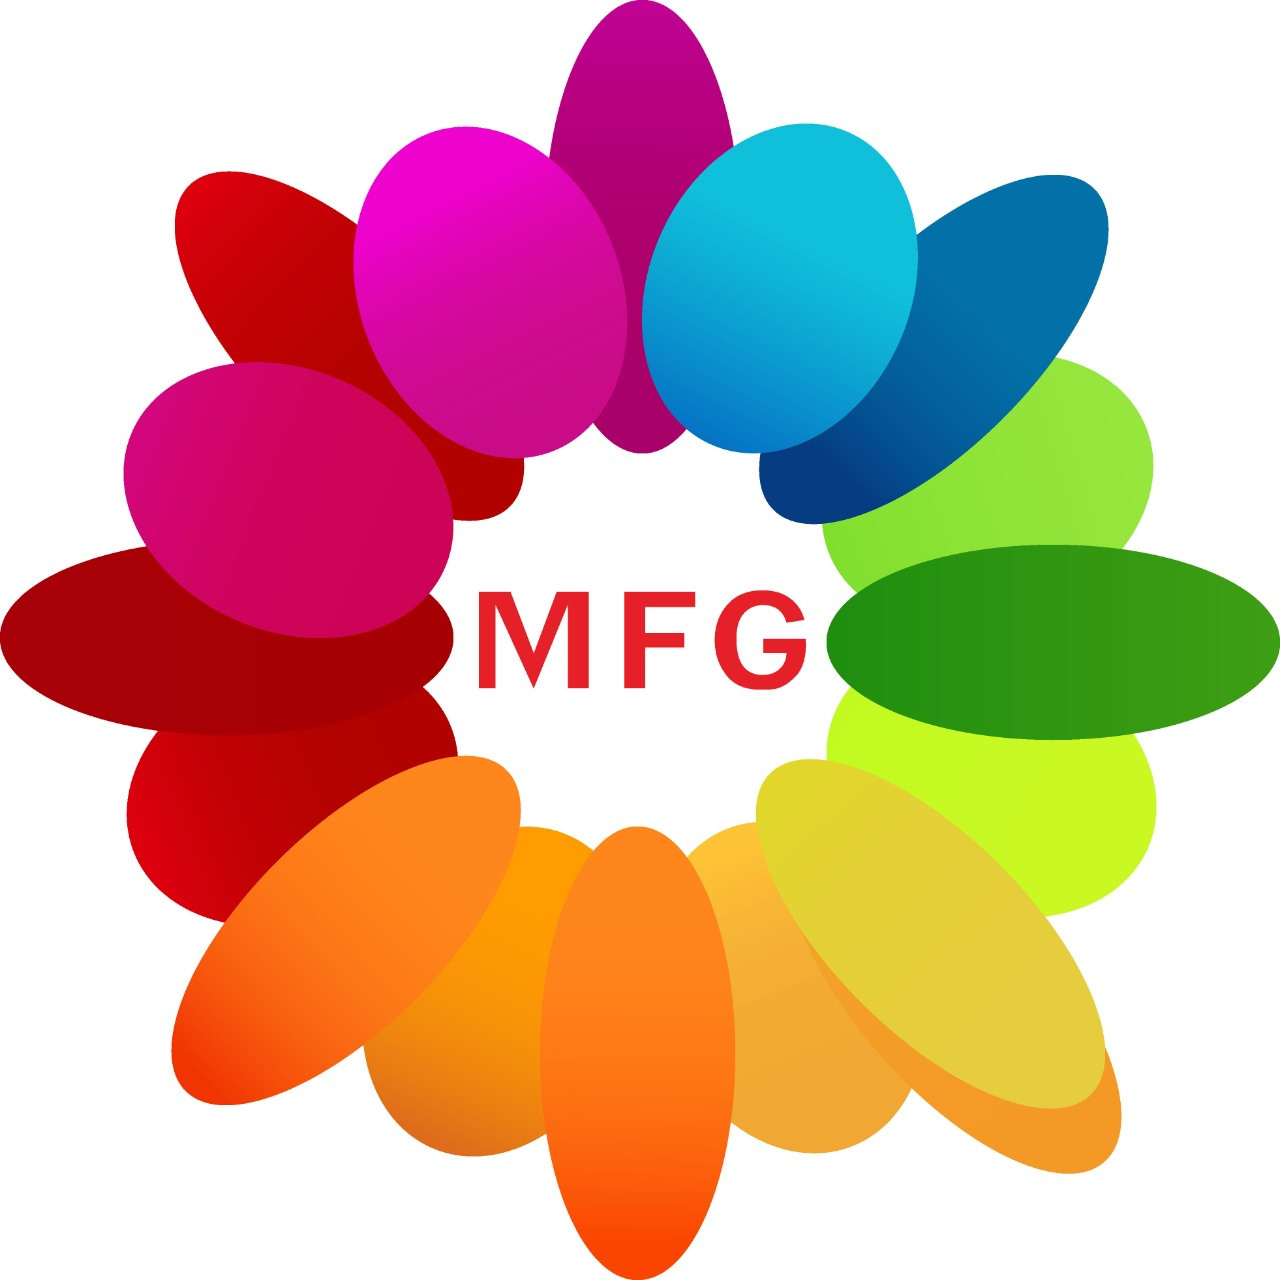 Bunch of 15 red roses with 1 pound butterscotch cake